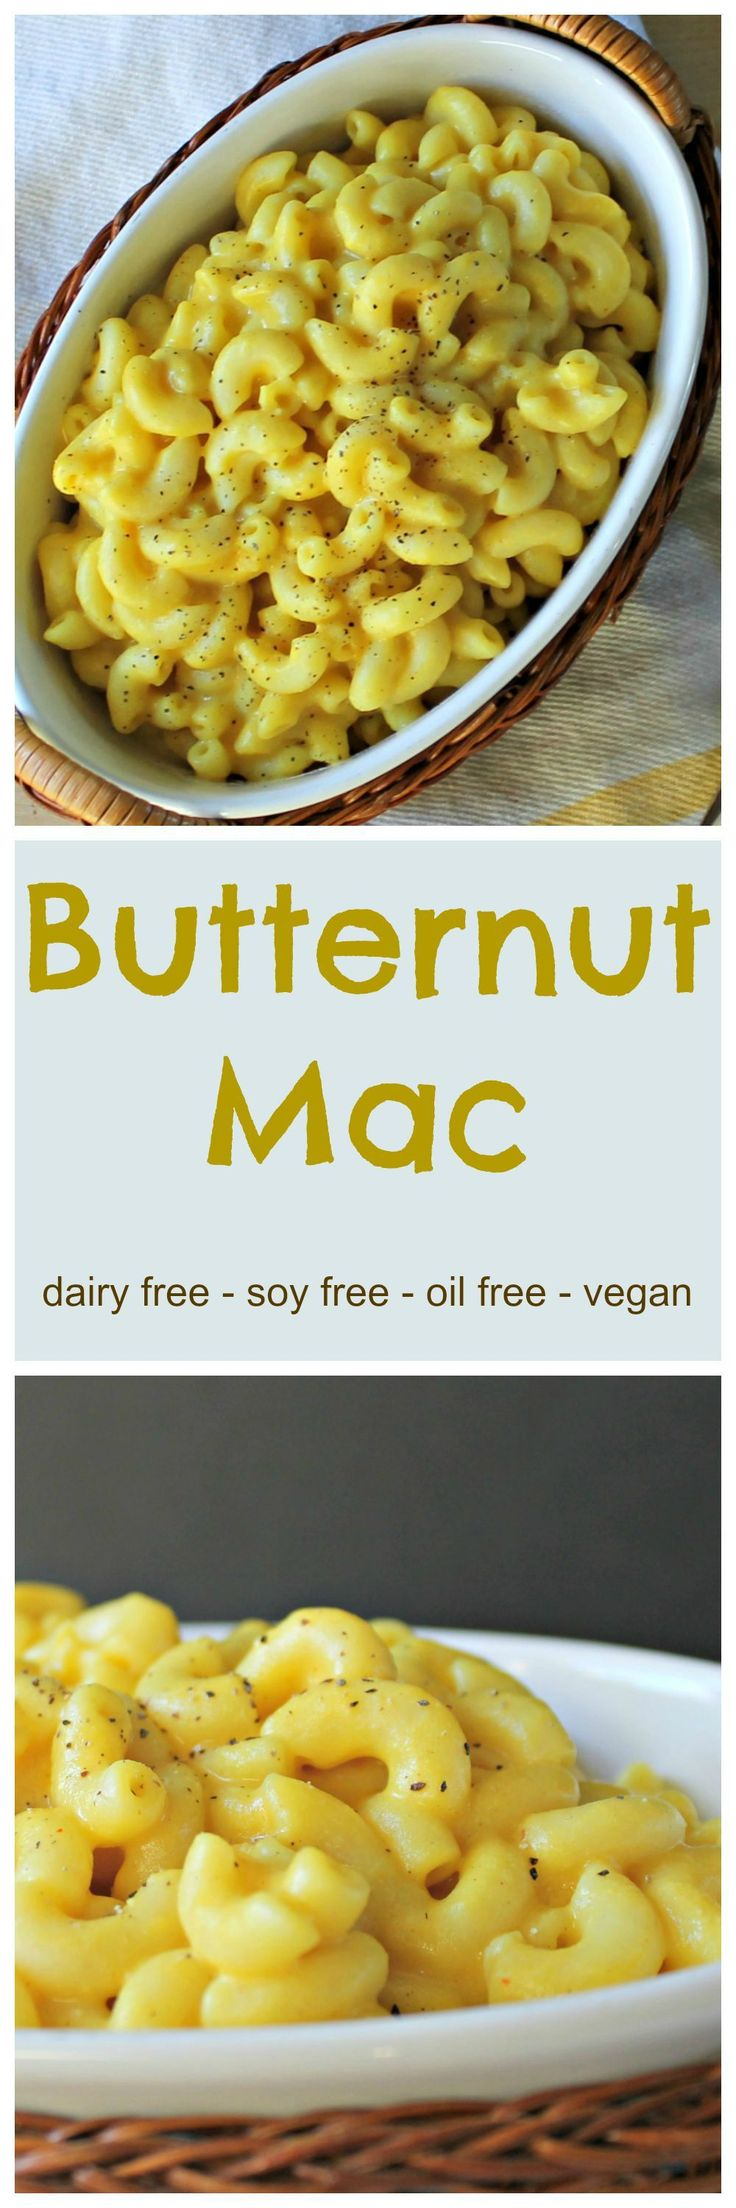 Butternut Mac - AMAZING! I substituted the paprika & nutmeg for ginger & Dijon for a mustard-based bbq sauce because that's what I had on hand. I also reserved water from when I boiled the squash rather than the pasta simply because I made the sauce ahead of time. SOOOO GOOD!